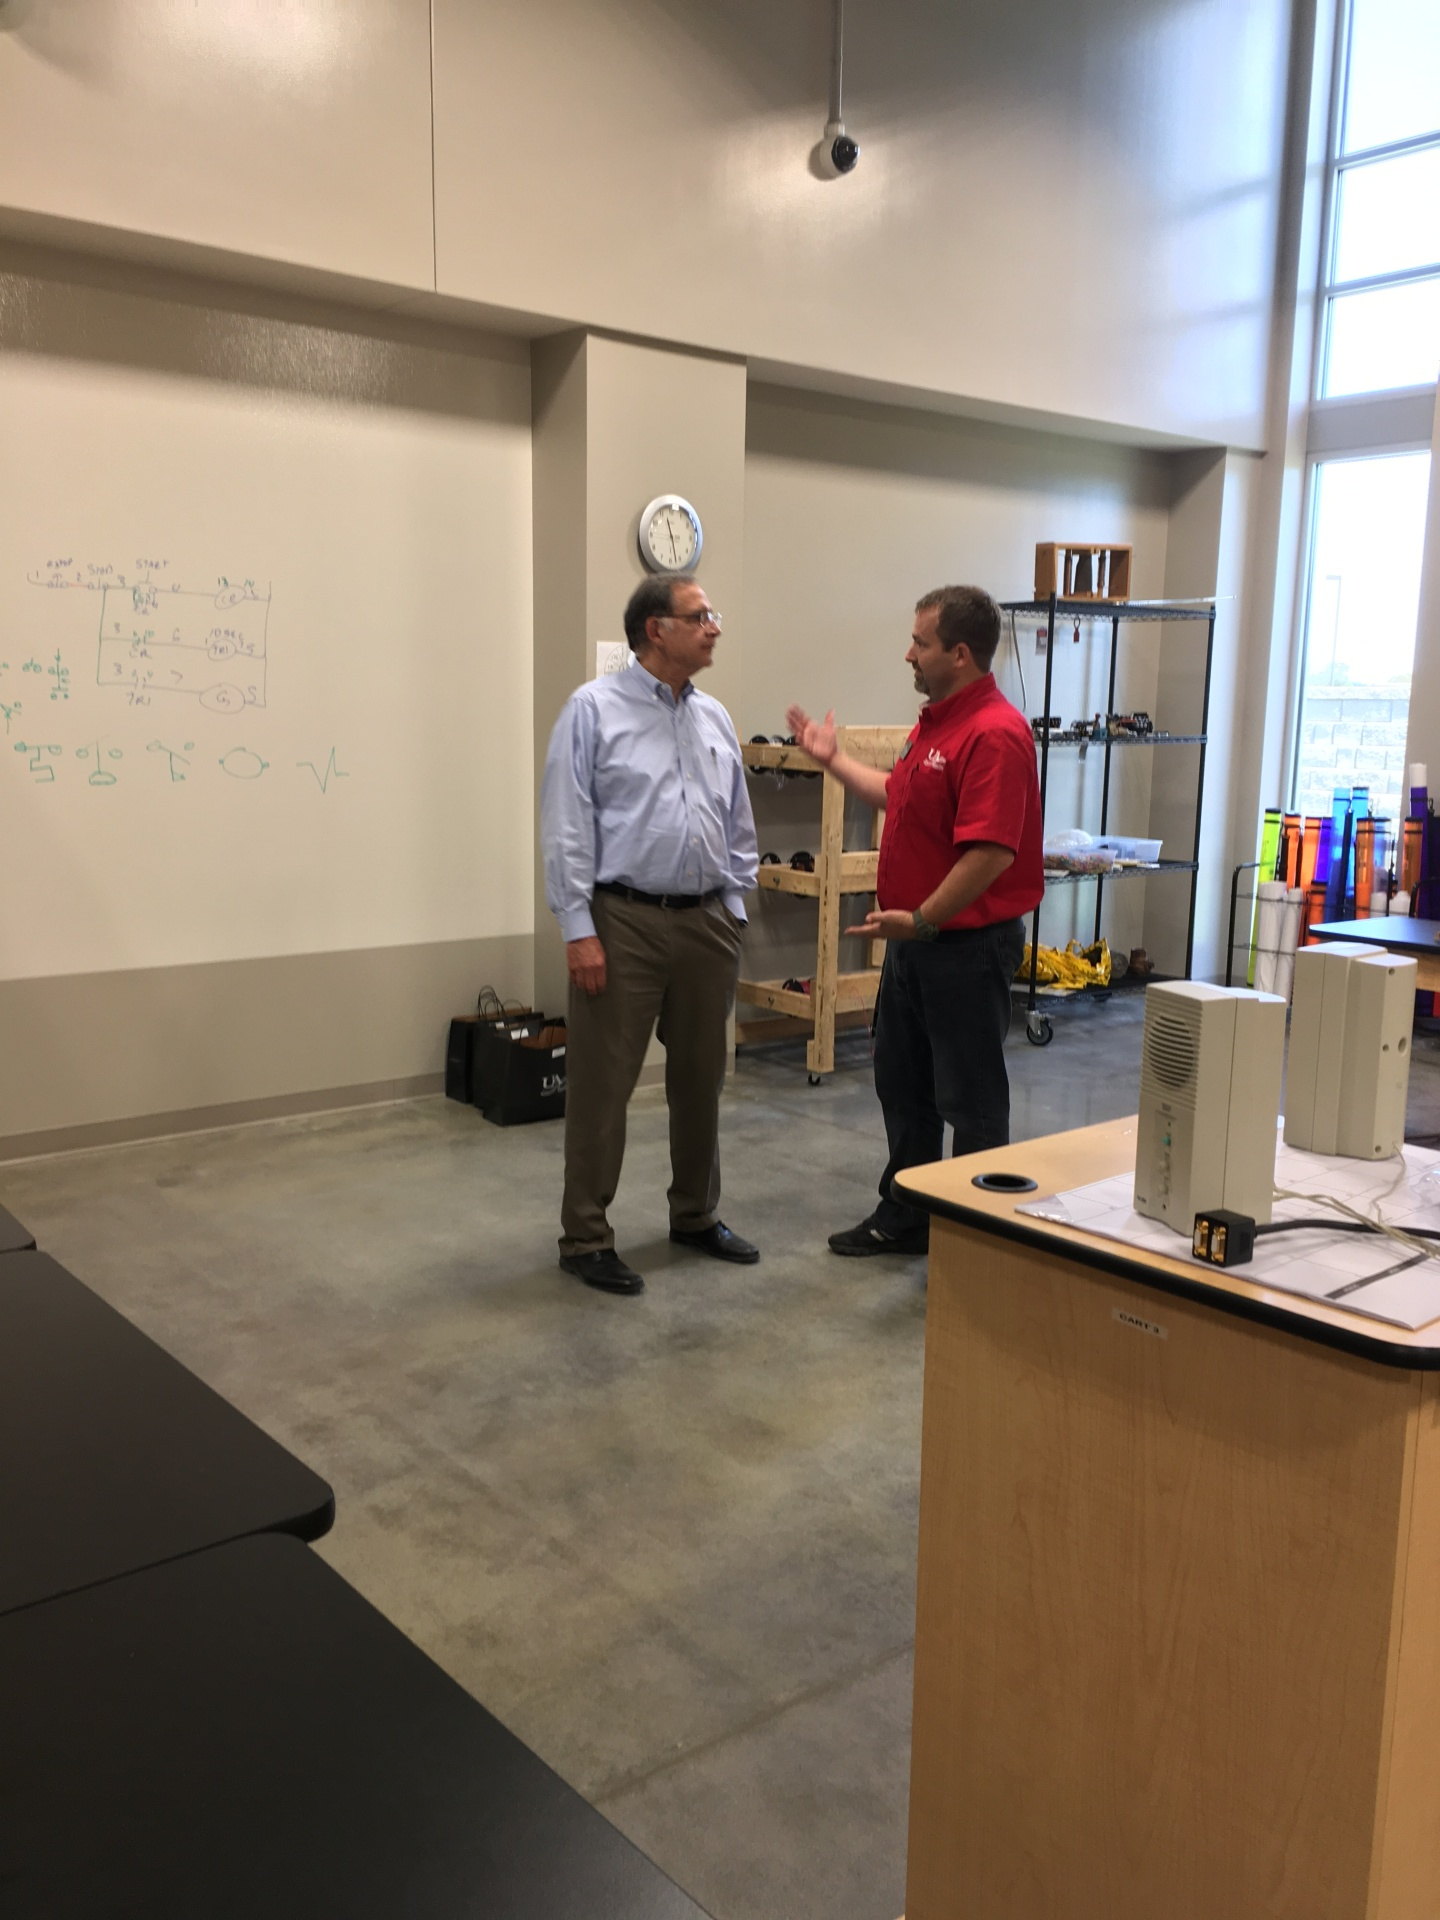 Boozman visits UACCM Workforce Training Center